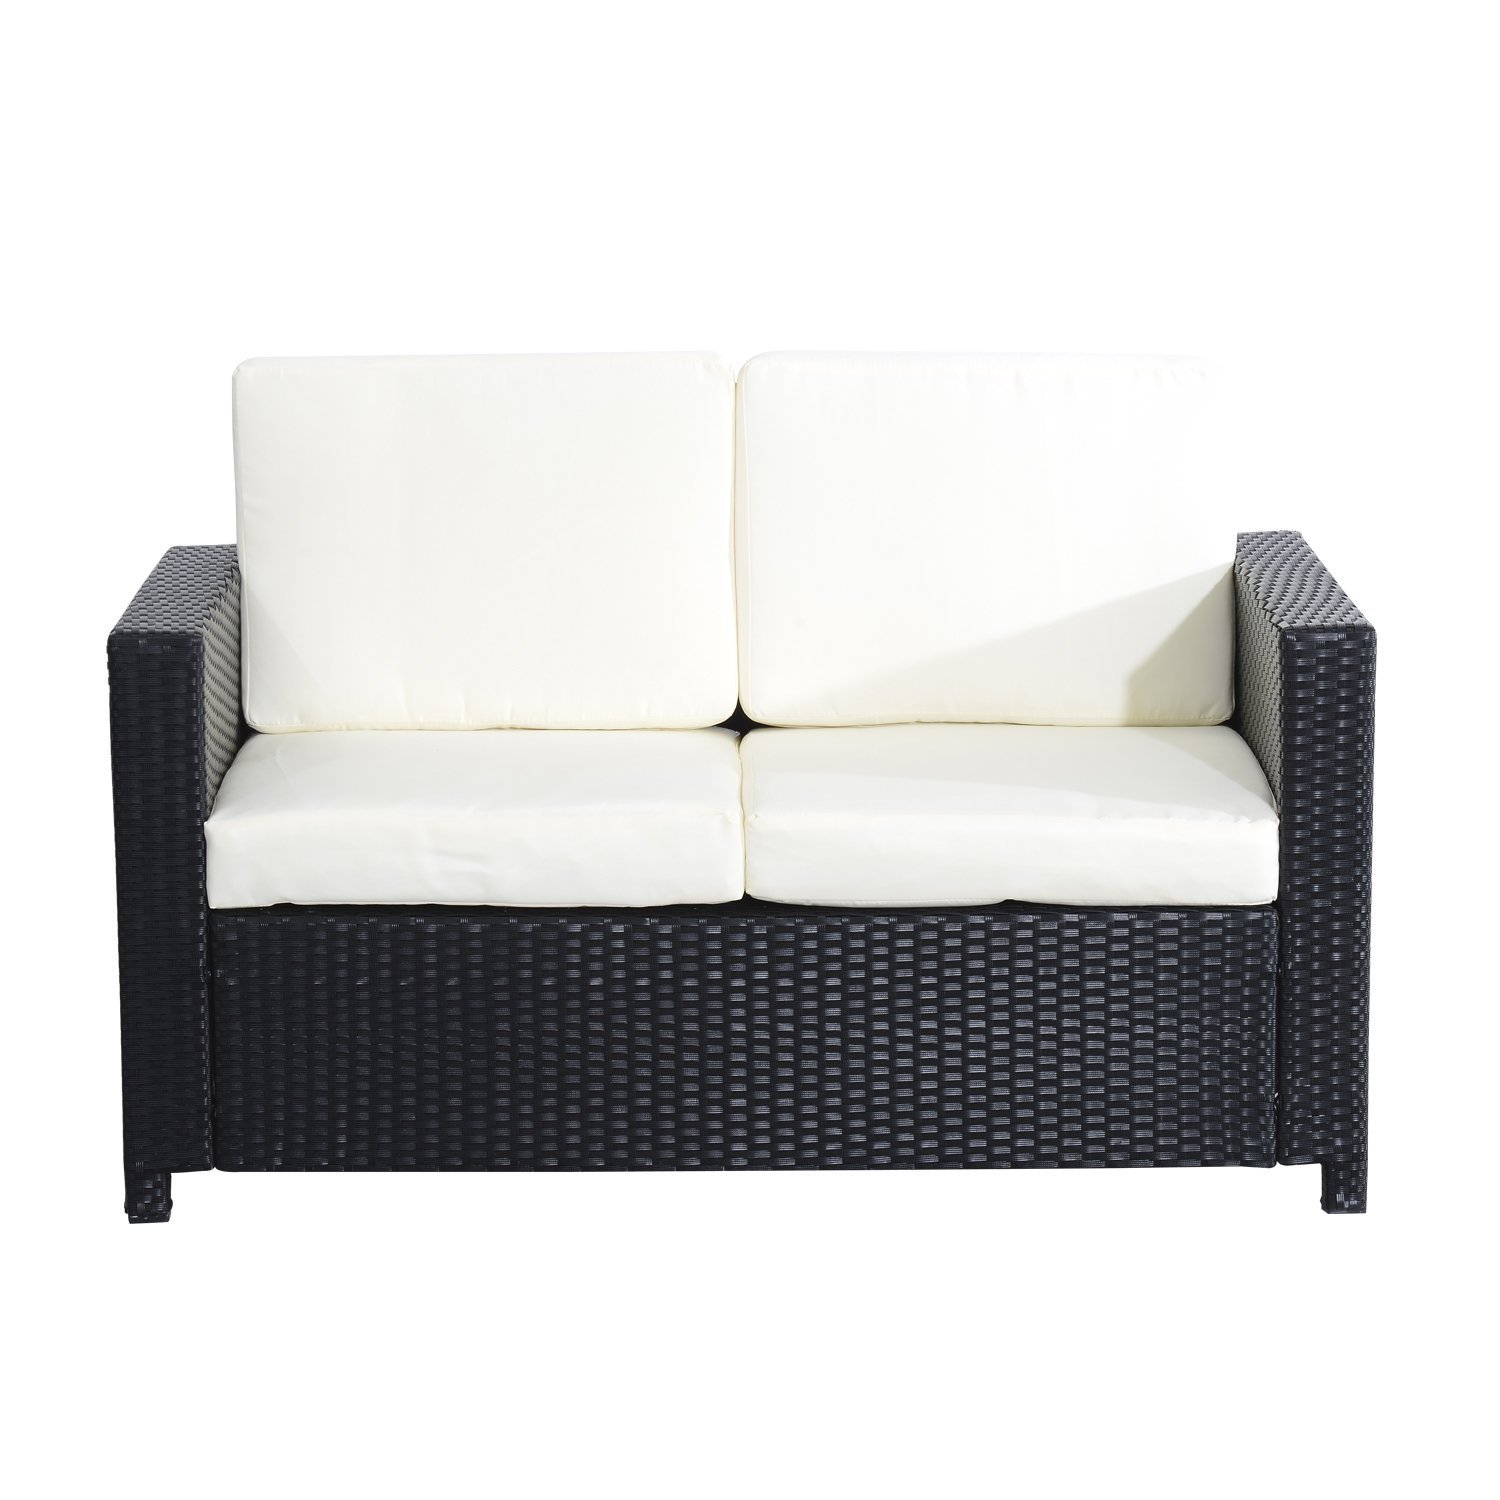 outsunny sessel exklusives polyrattan gartenm bel. Black Bedroom Furniture Sets. Home Design Ideas